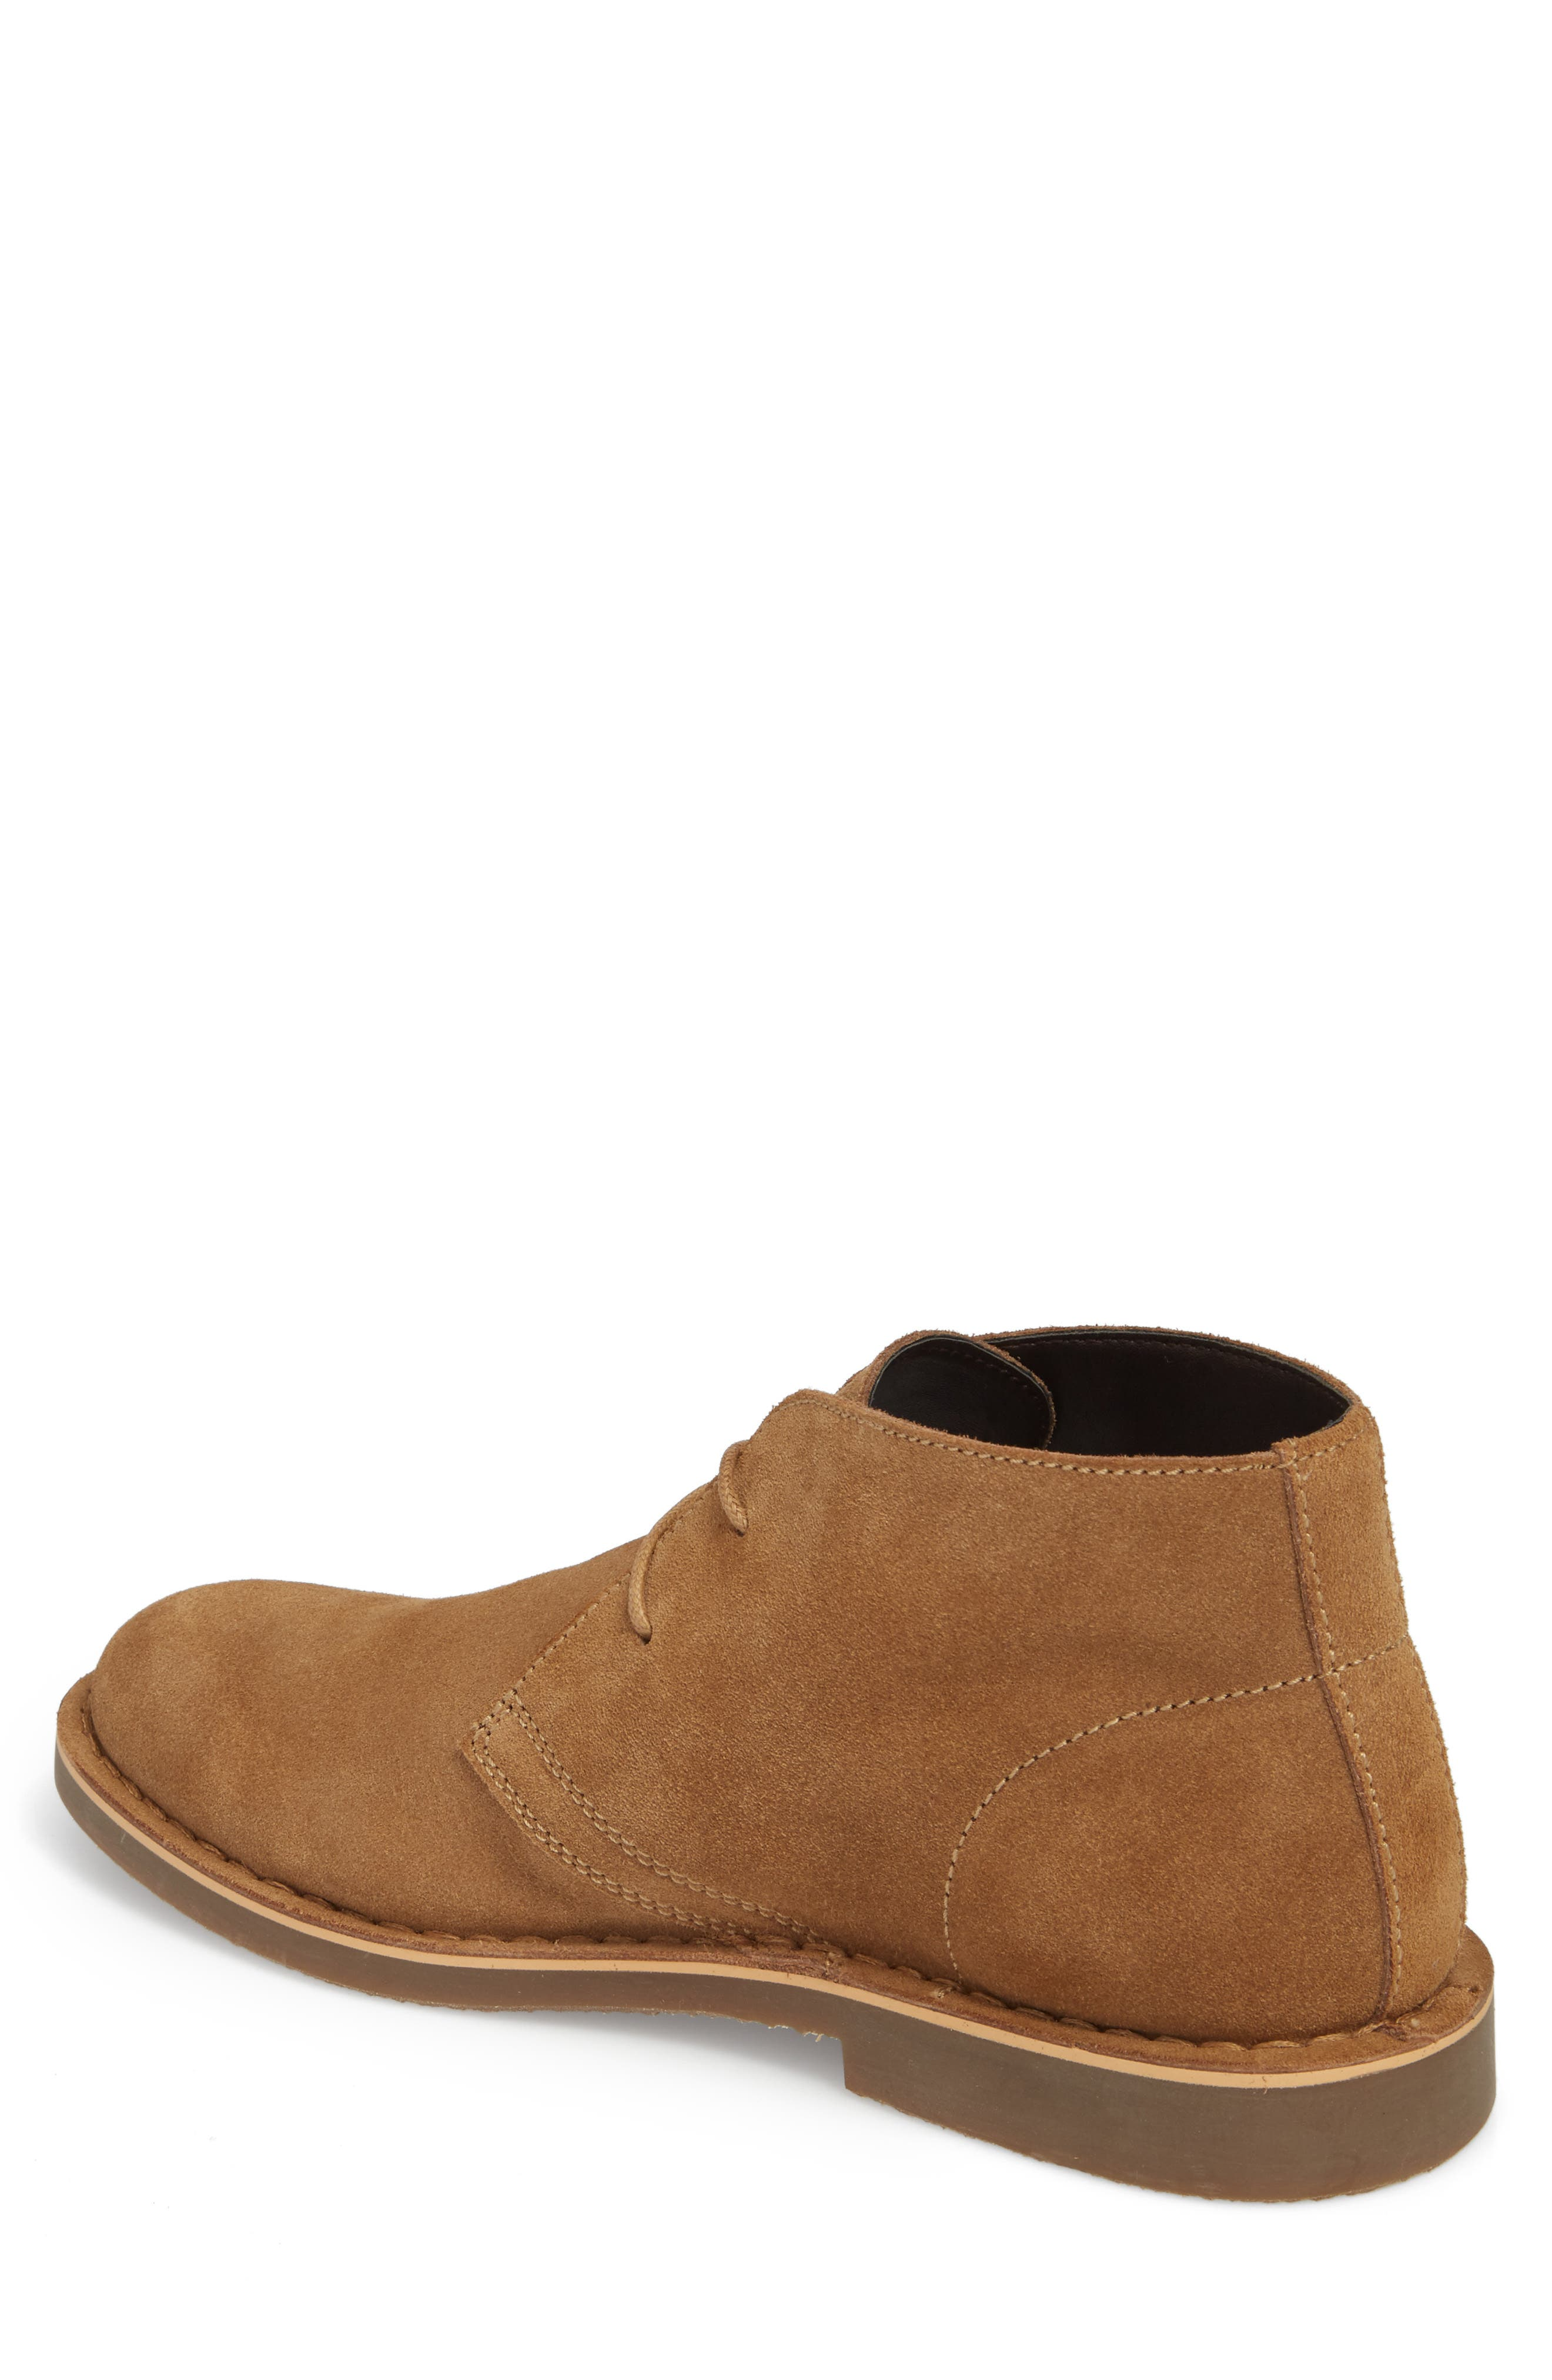 Tempe Chukka Boot,                             Alternate thumbnail 2, color,                             SAND SUEDE